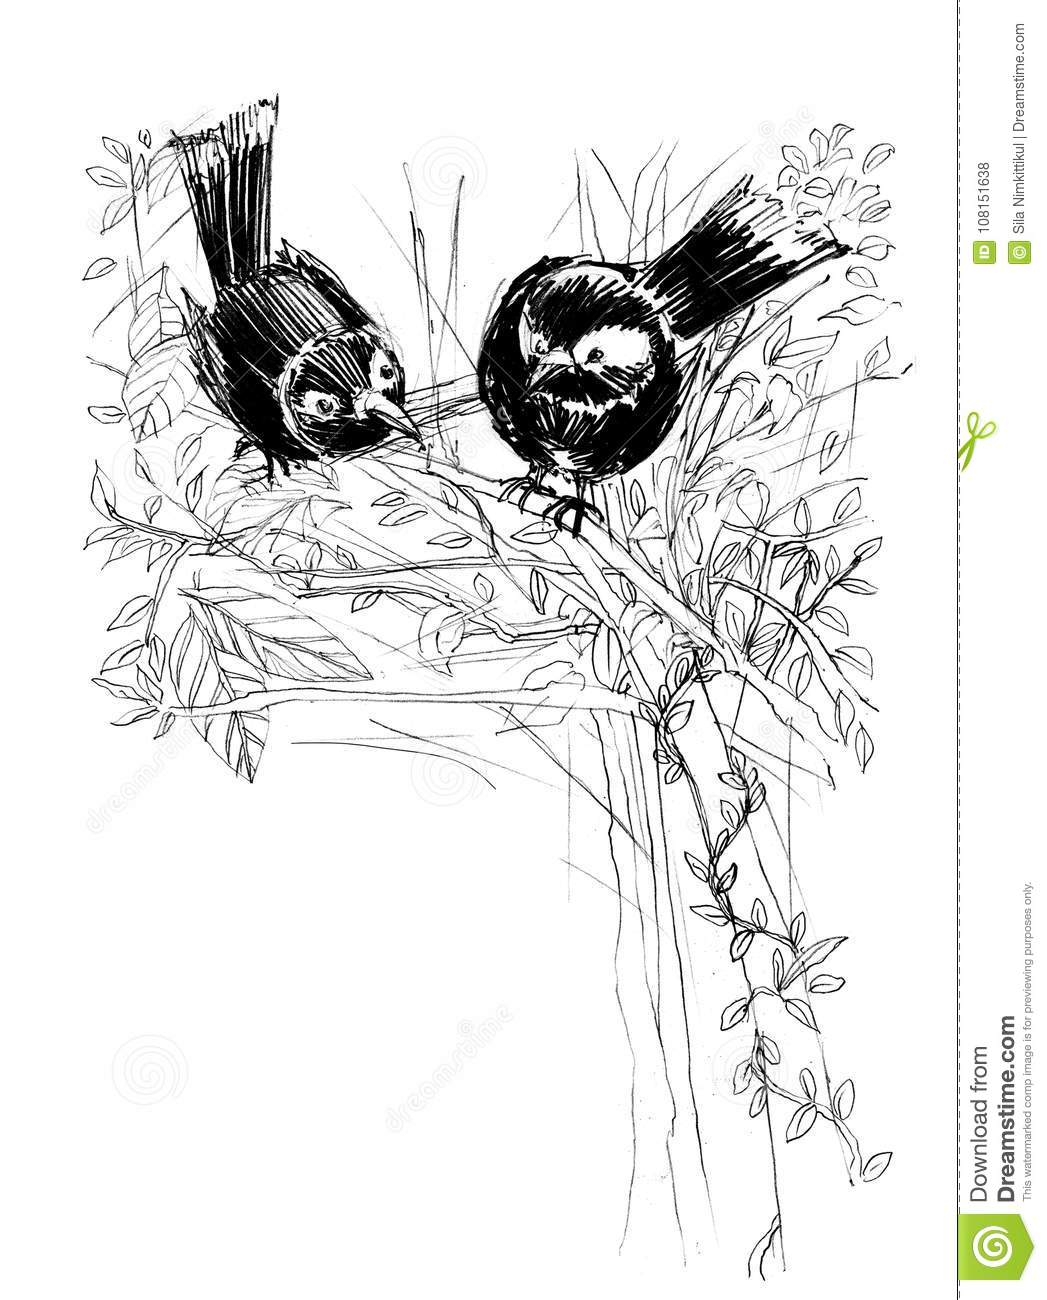 Magpie bird with love cute acting design pencil sketch from real download preview